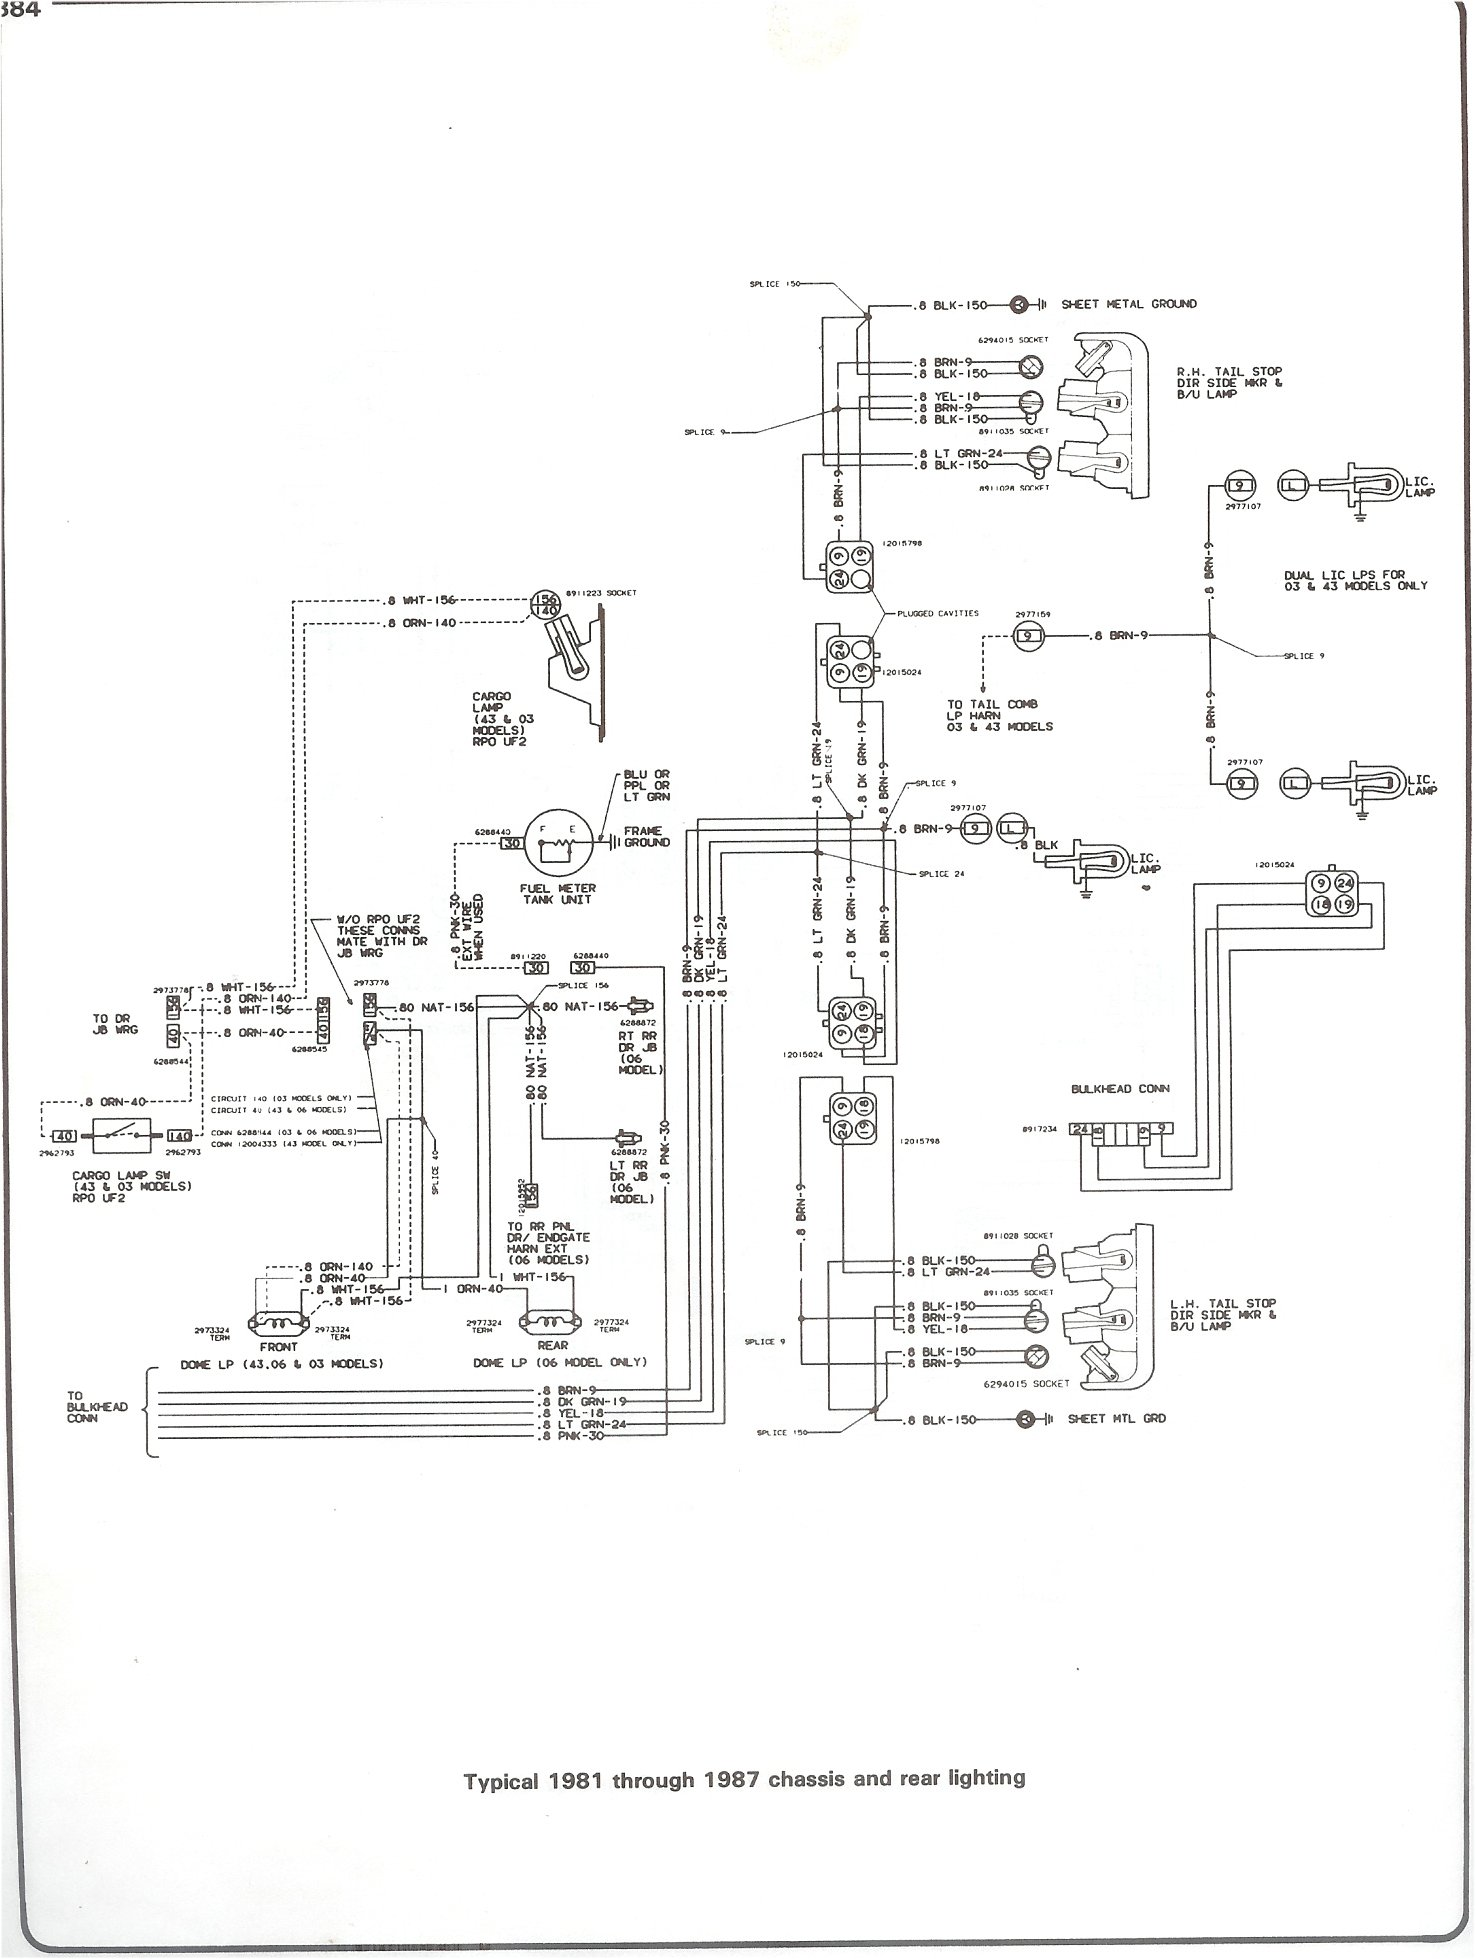 1983 C10 Transmission Wiring Harness : 36 Wiring Diagram